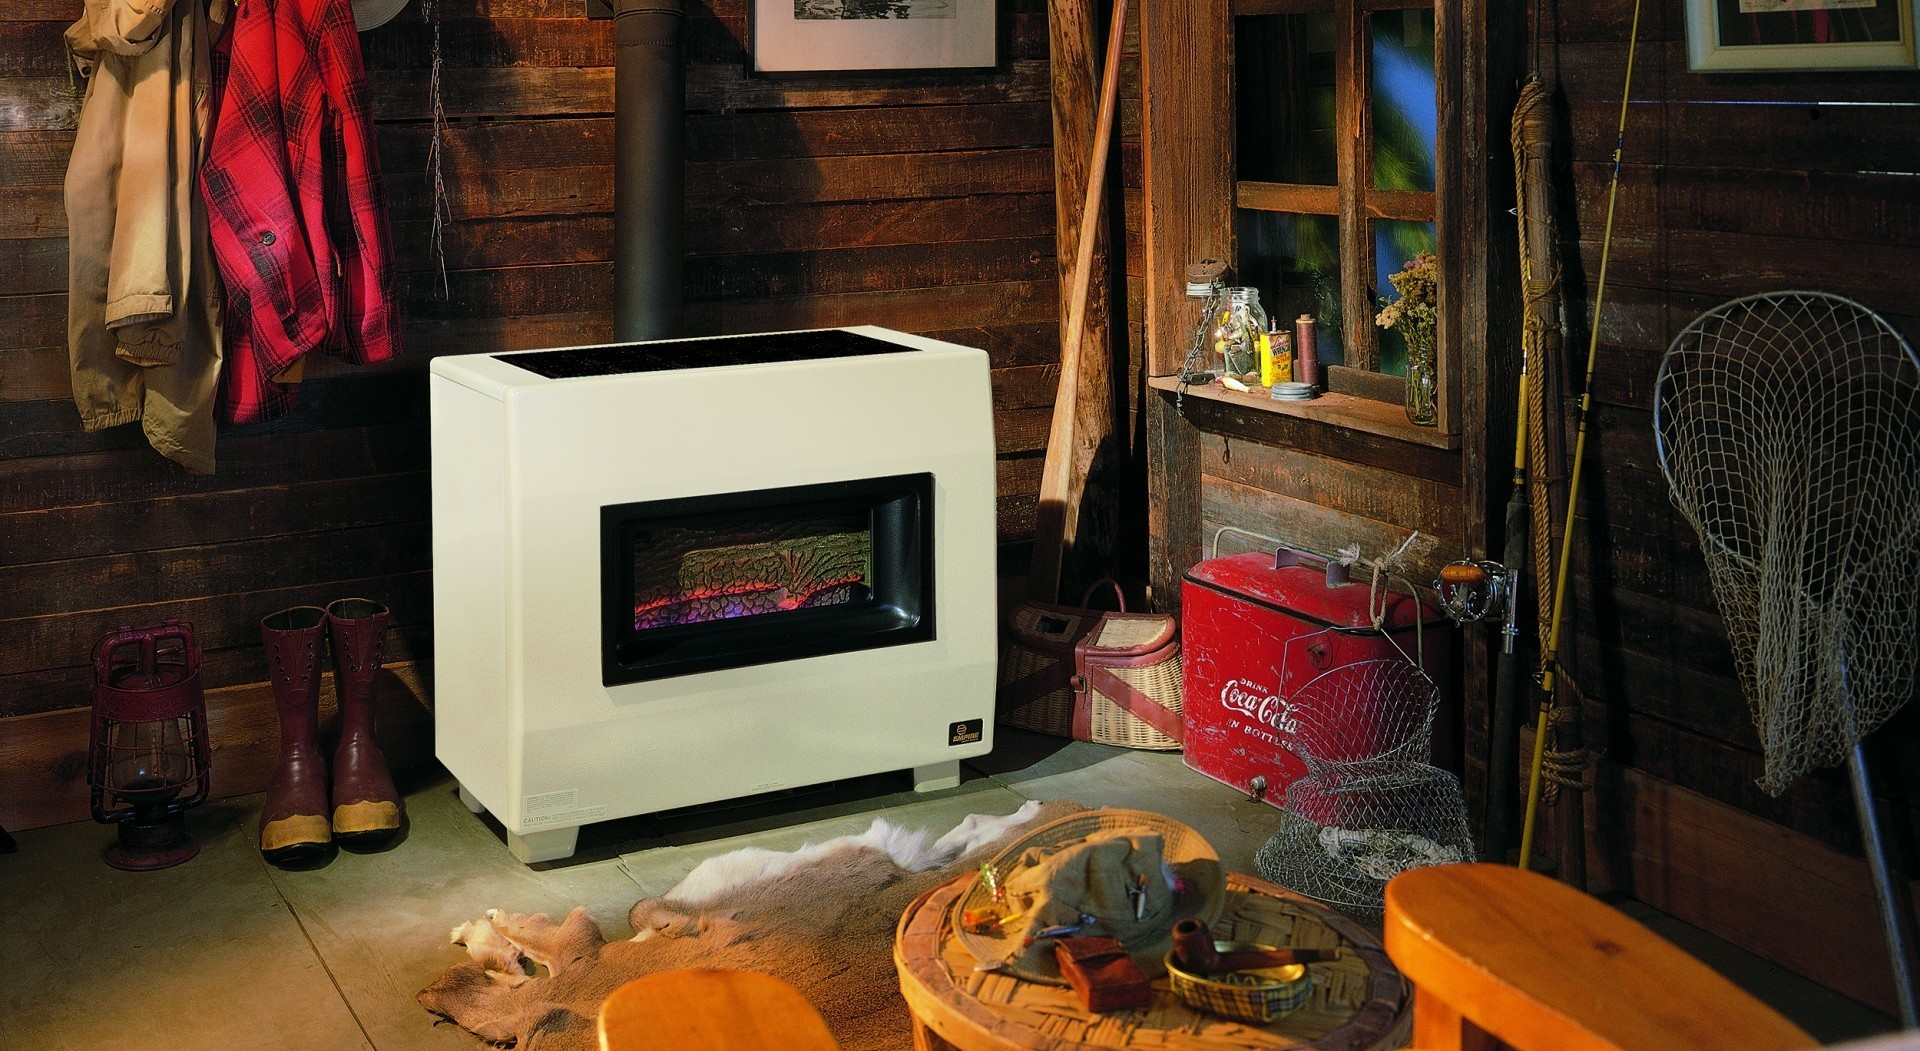 empire page systems vf hearth products empireventfreelogs vent free comfort gas comforter logs